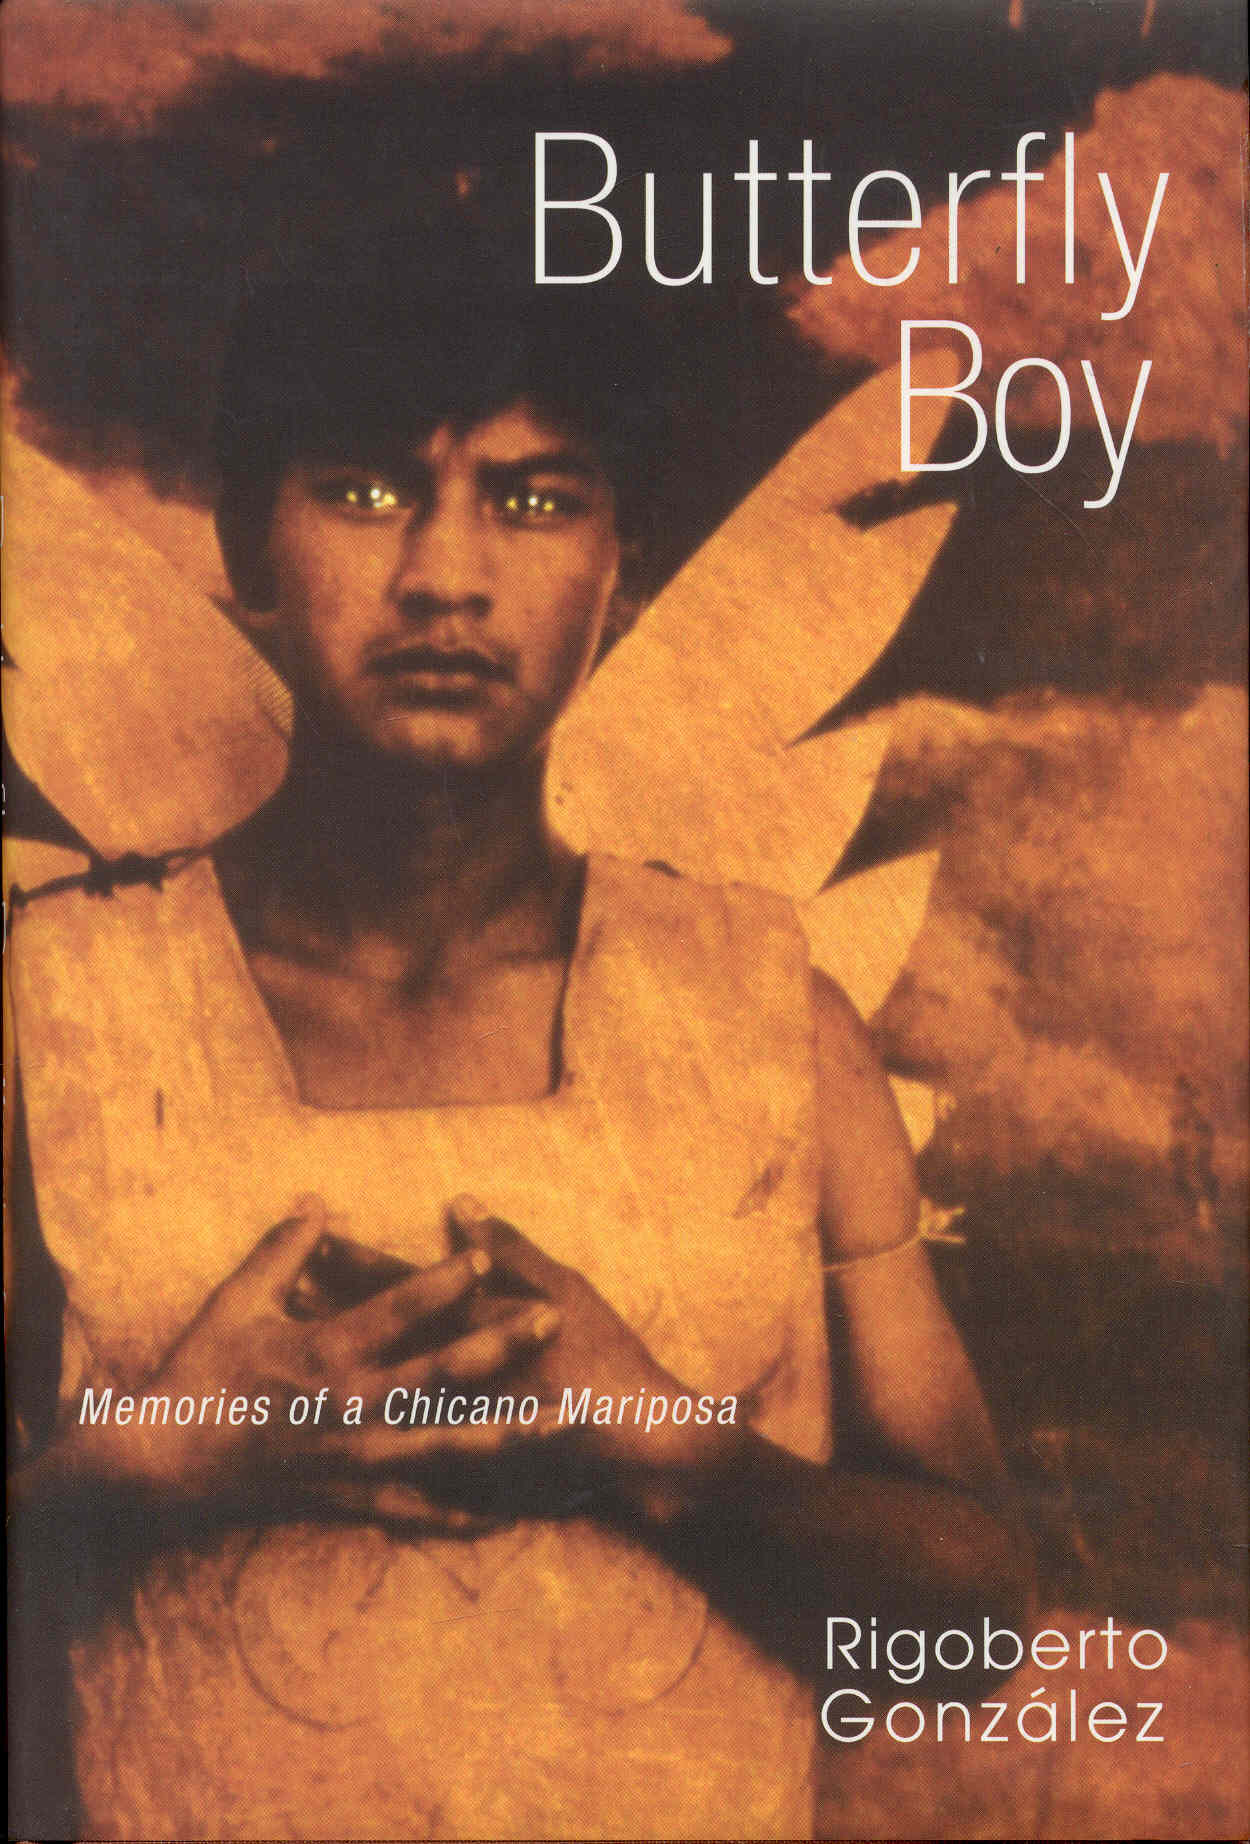 Image for Butterfly Boy: Memories of a Chicano Mariposa